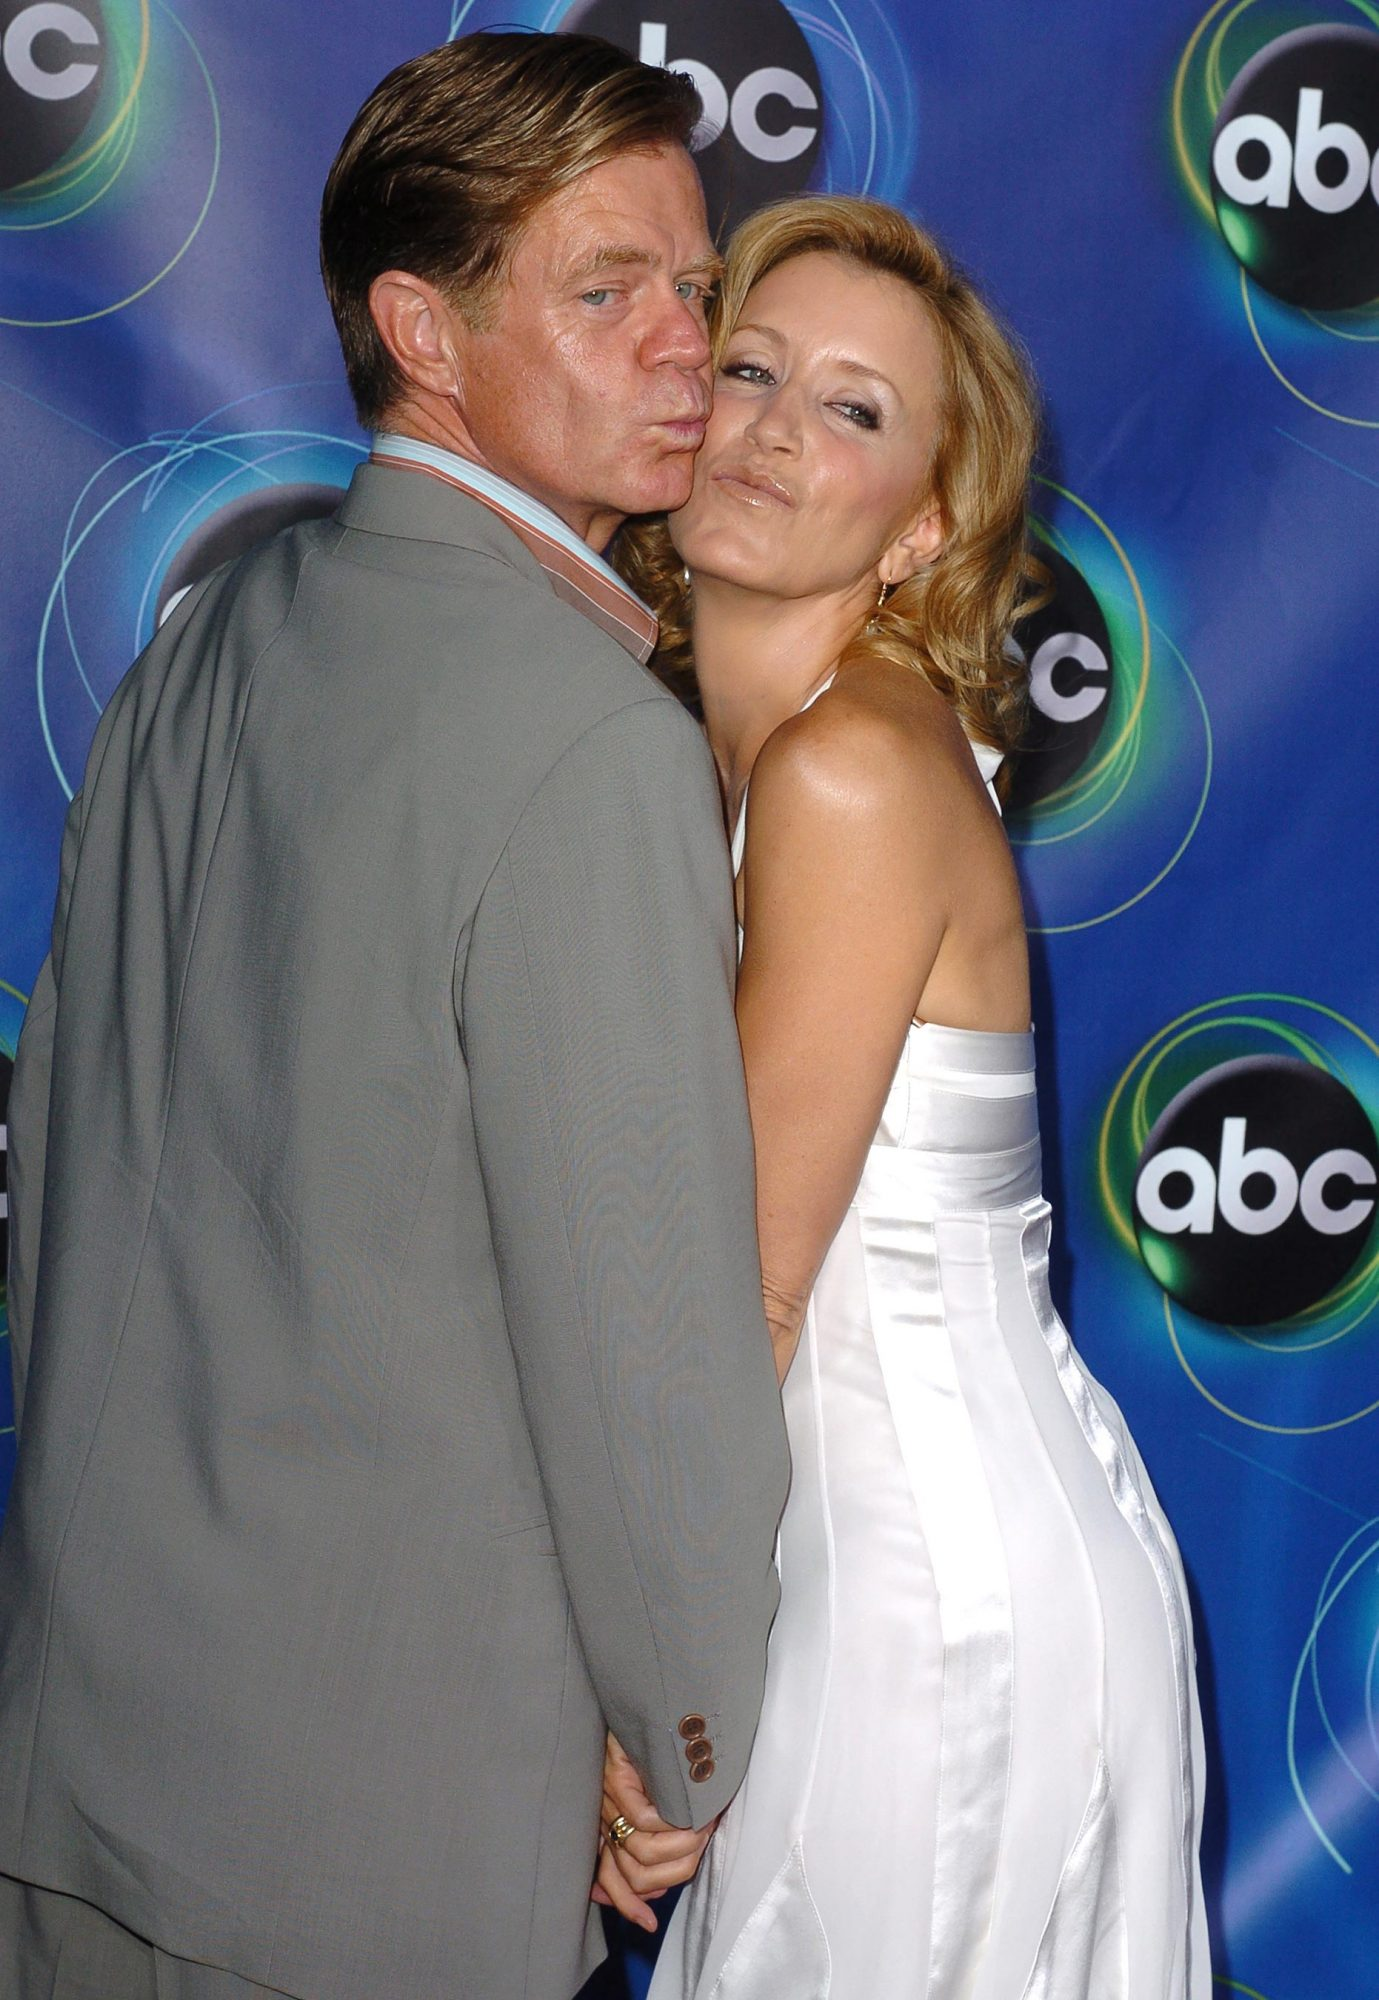 ABC 2005 Summer Press Tour All-Star Party - Arrivals